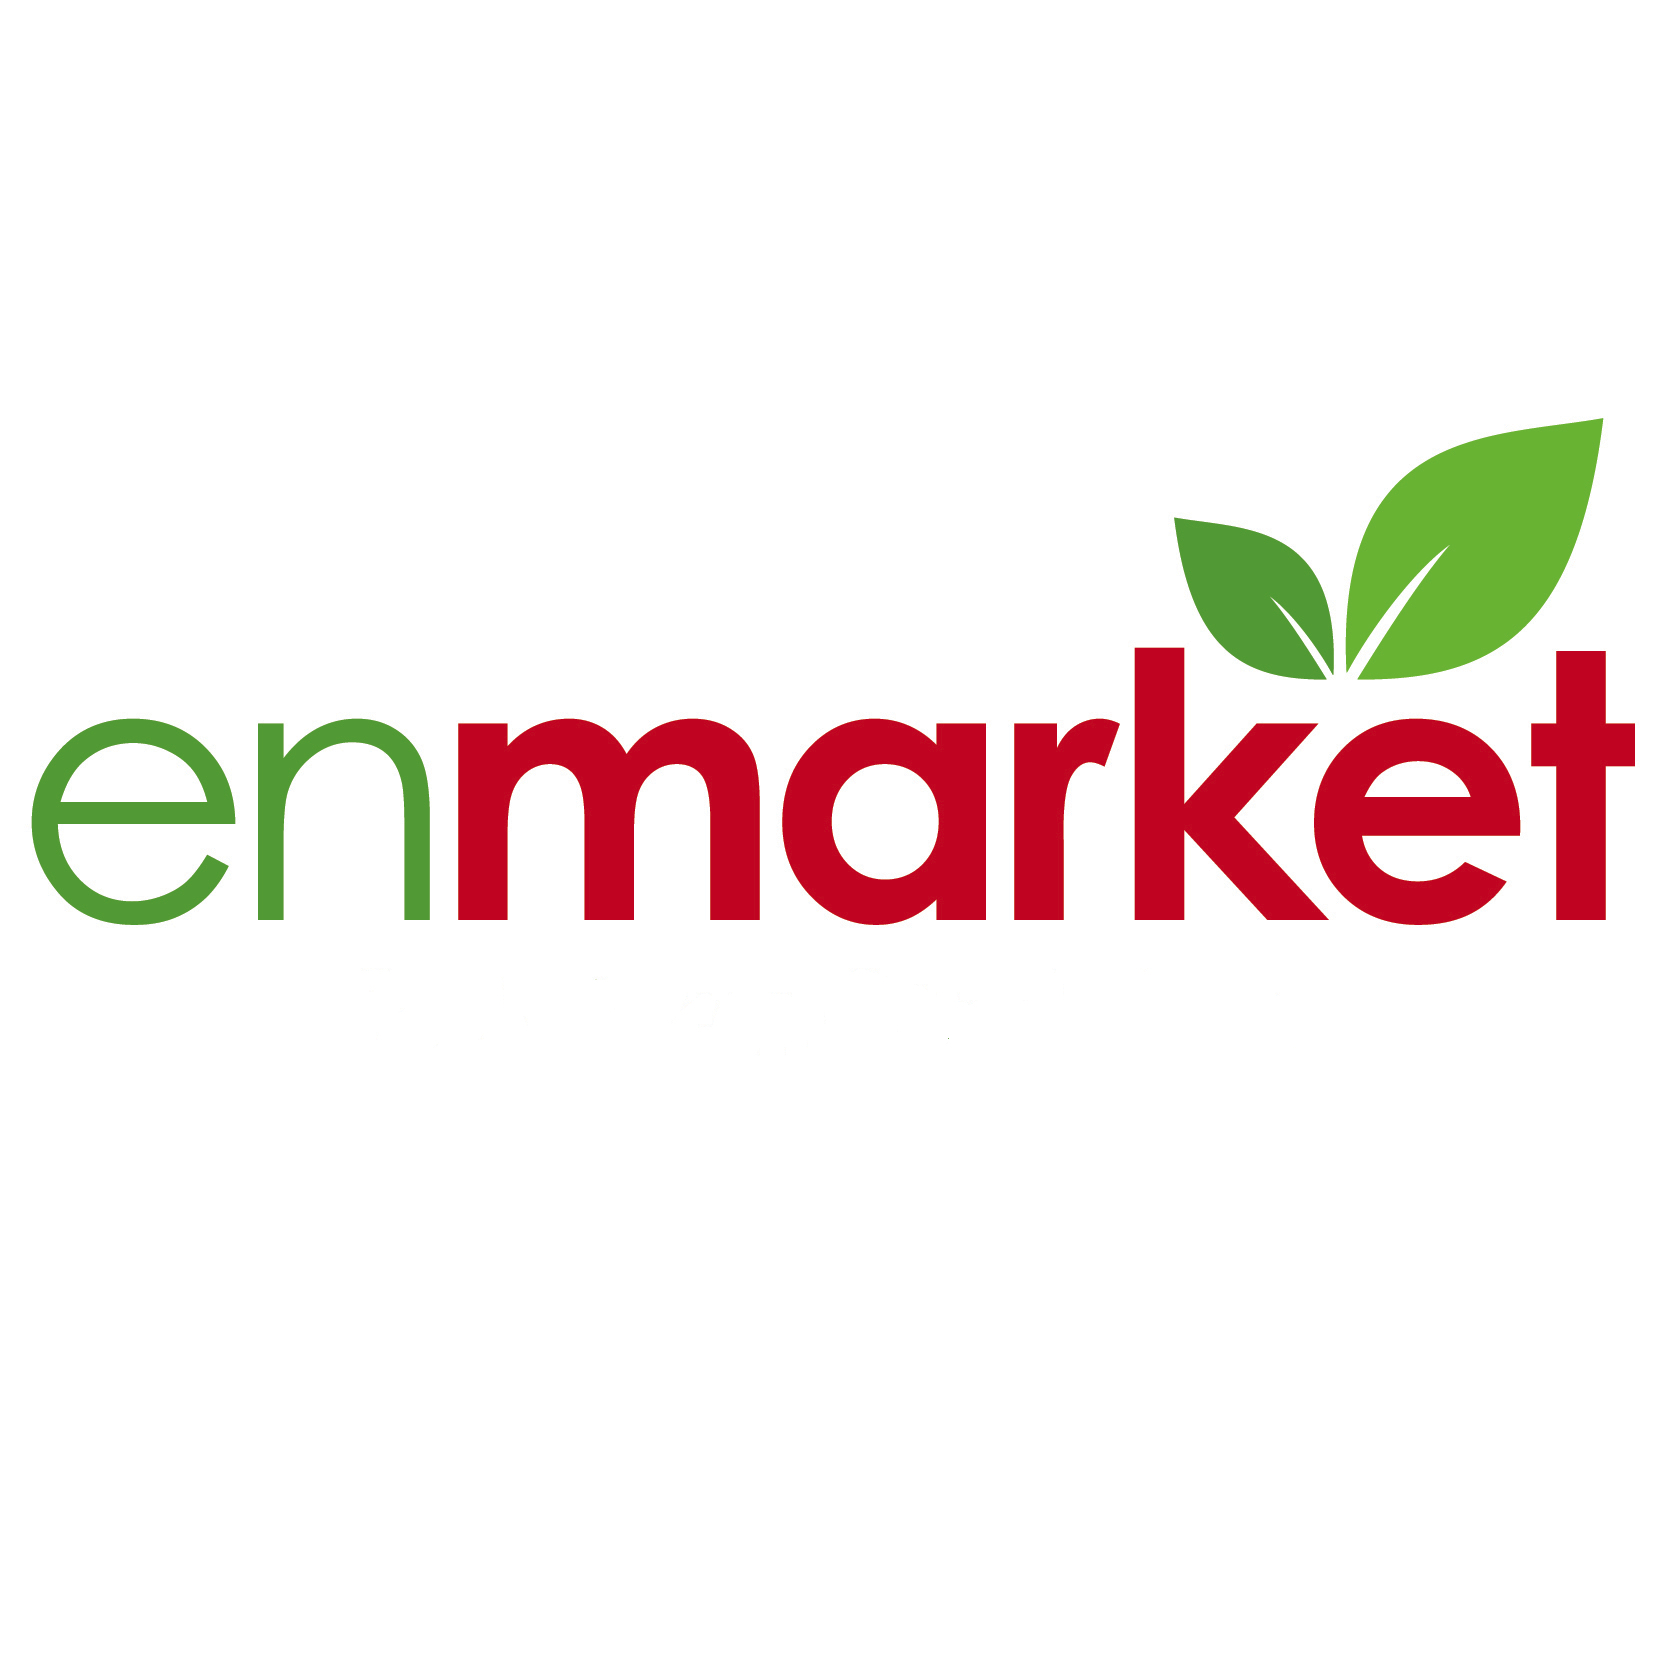 Drawing Sheet_ENMARKET logo 6-10-15